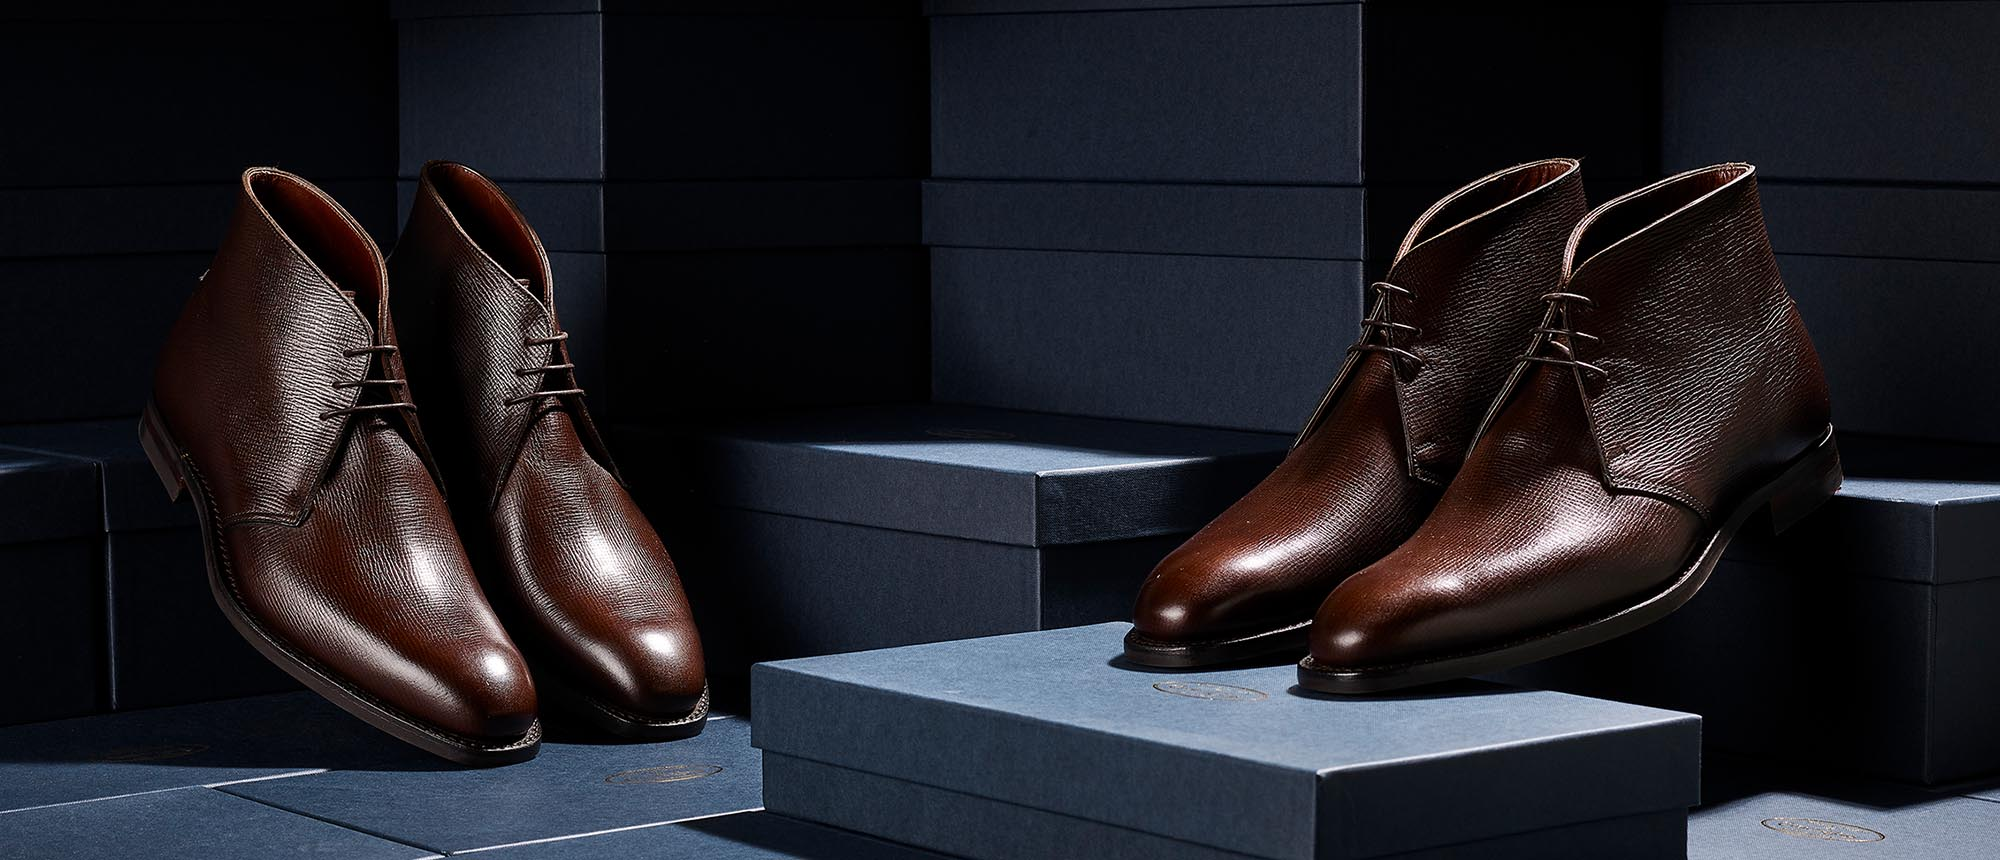 Crockett & Jones - AW20 Details... Kew